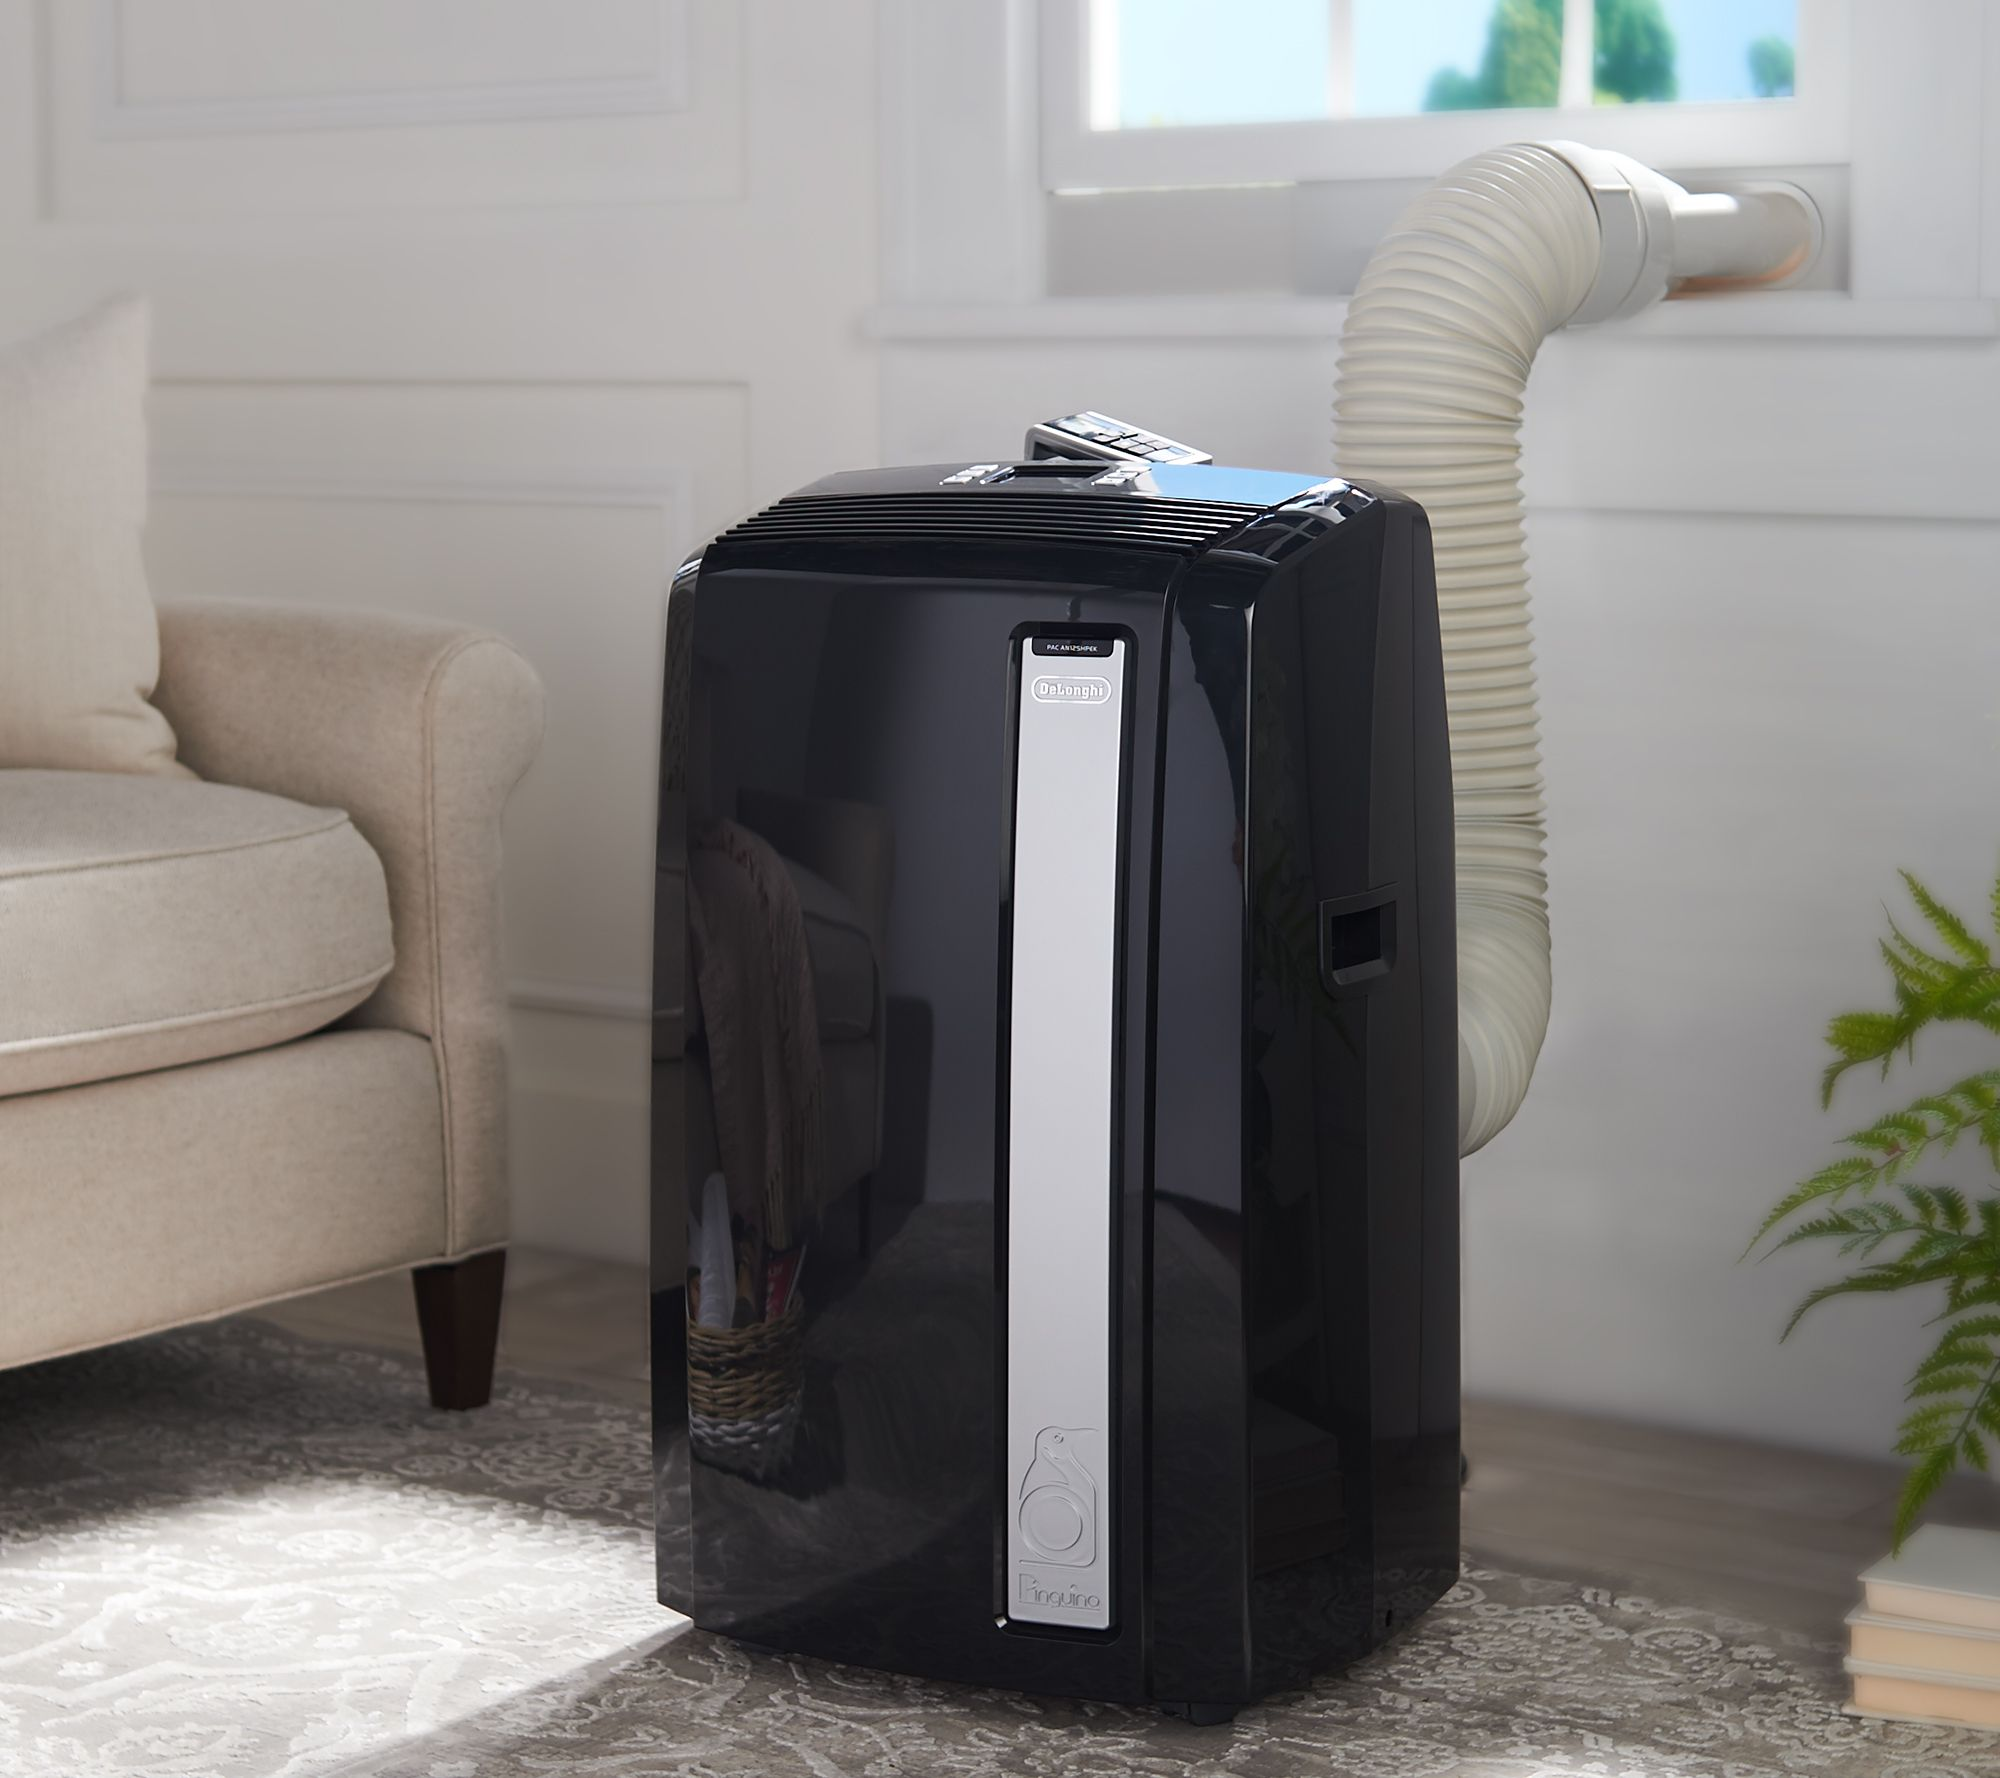 DeLonghi 4-in-1 480 sq  ft  Portable Air Conditioner with Heat — QVC com